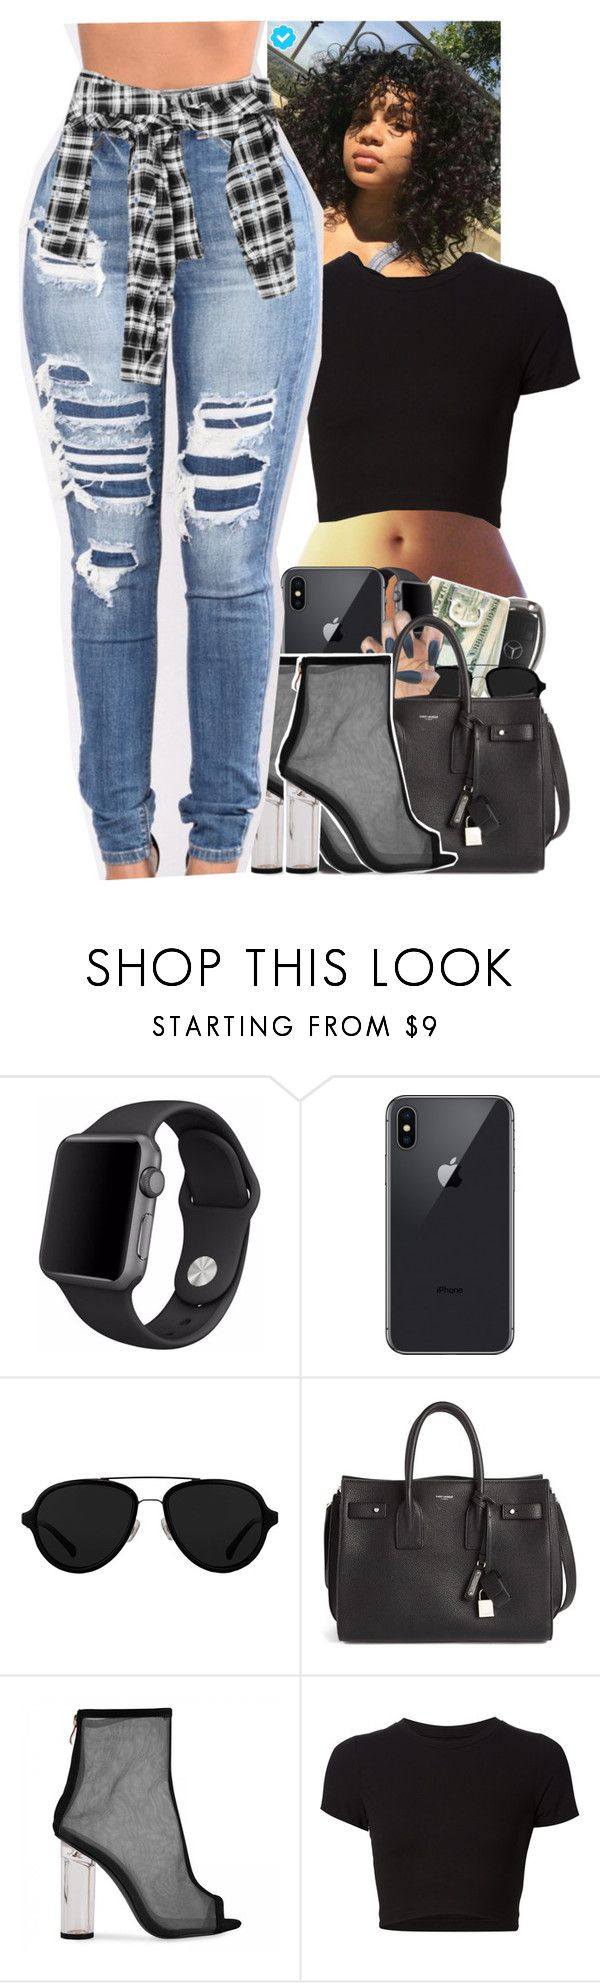 """Untitled #2388"" by txoni ❤ liked on Polyvore featuring Apple, 3.1 Phillip Lim, Yves Saint Laurent and Getting Back To Square One"